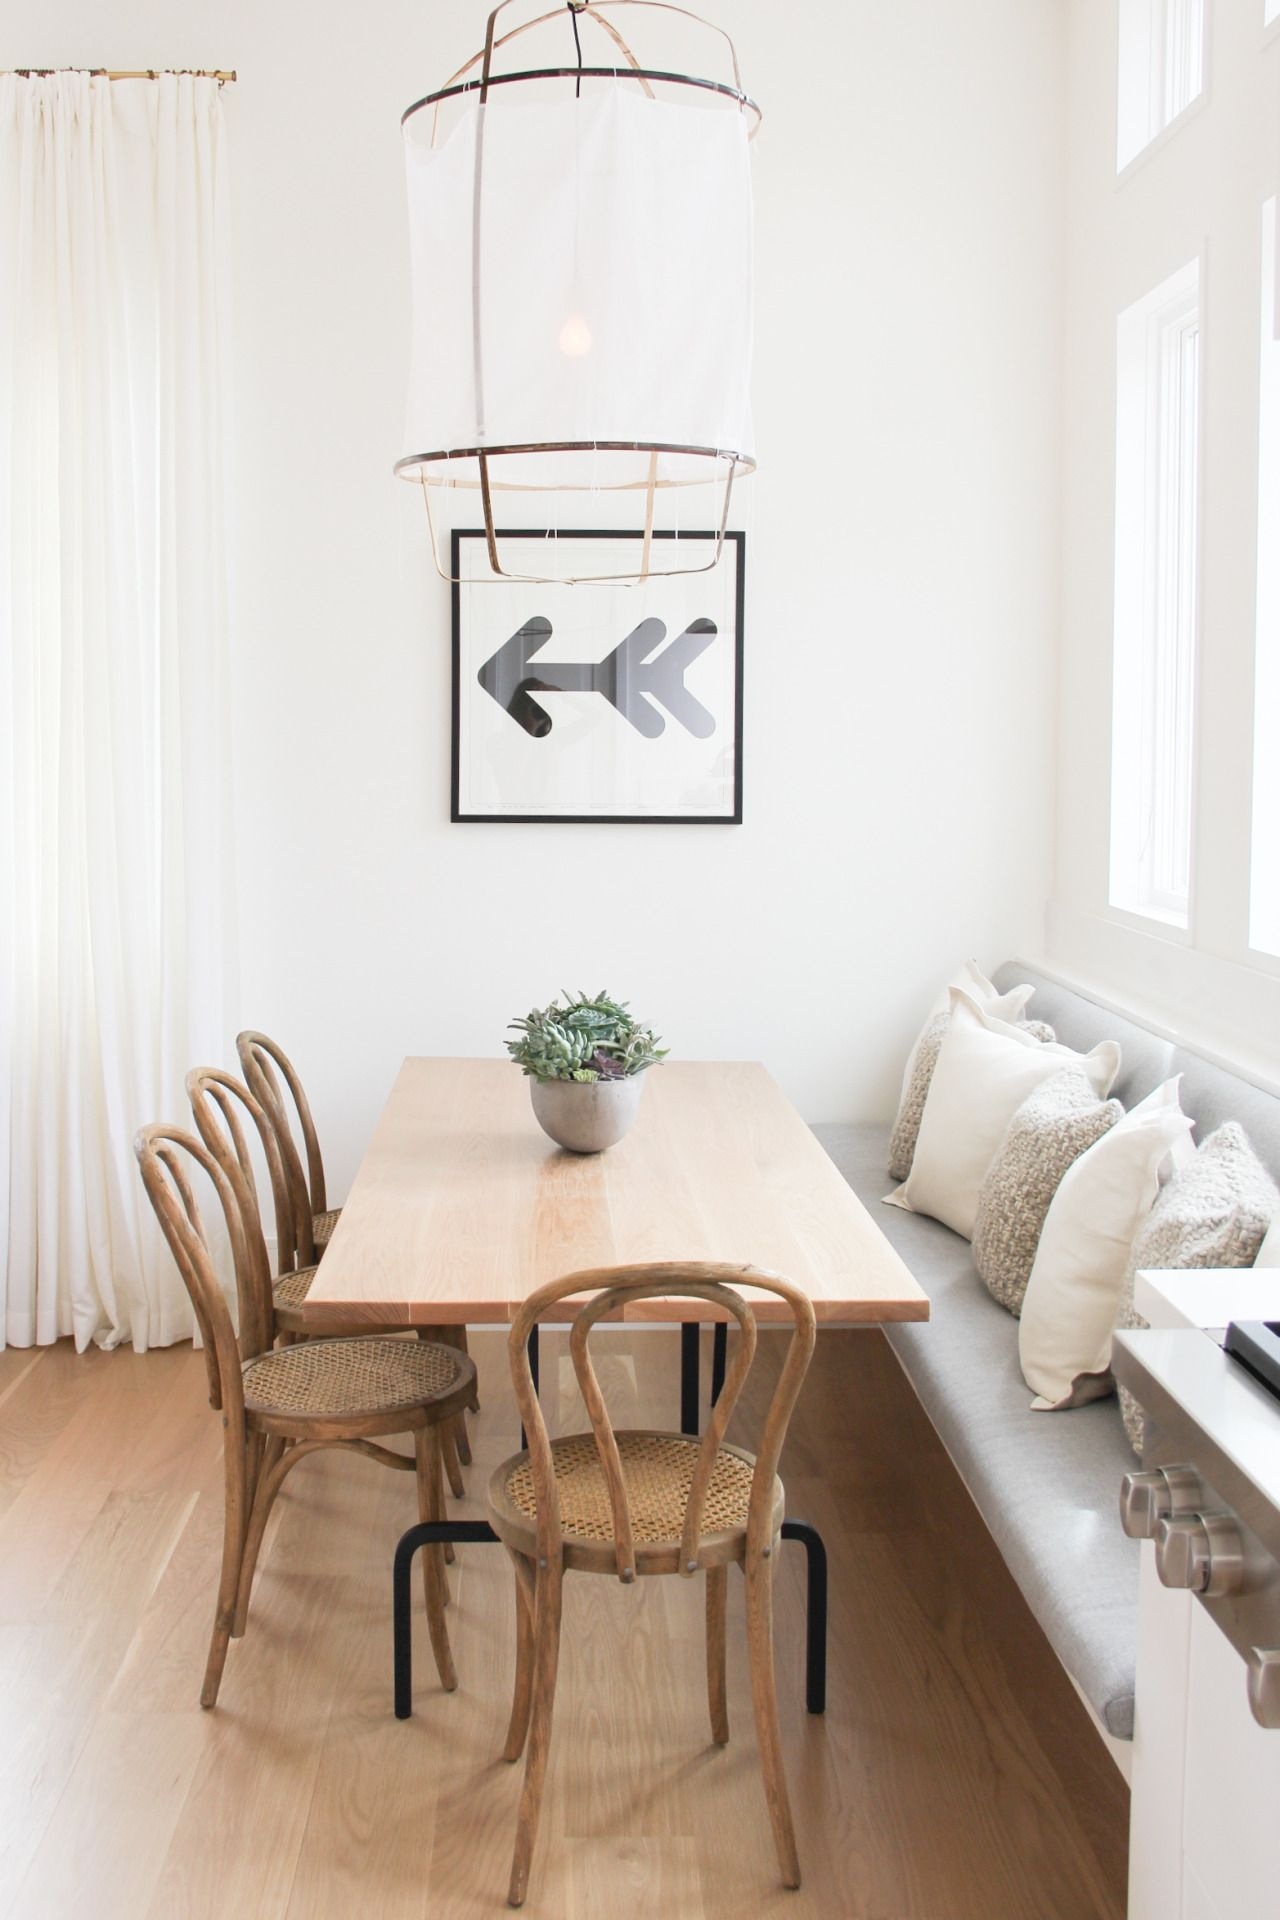 Kitchen table with bench seating and chairs  A Gentlewoman  Lamparas  Pinterest  Timber table Bentwood chairs